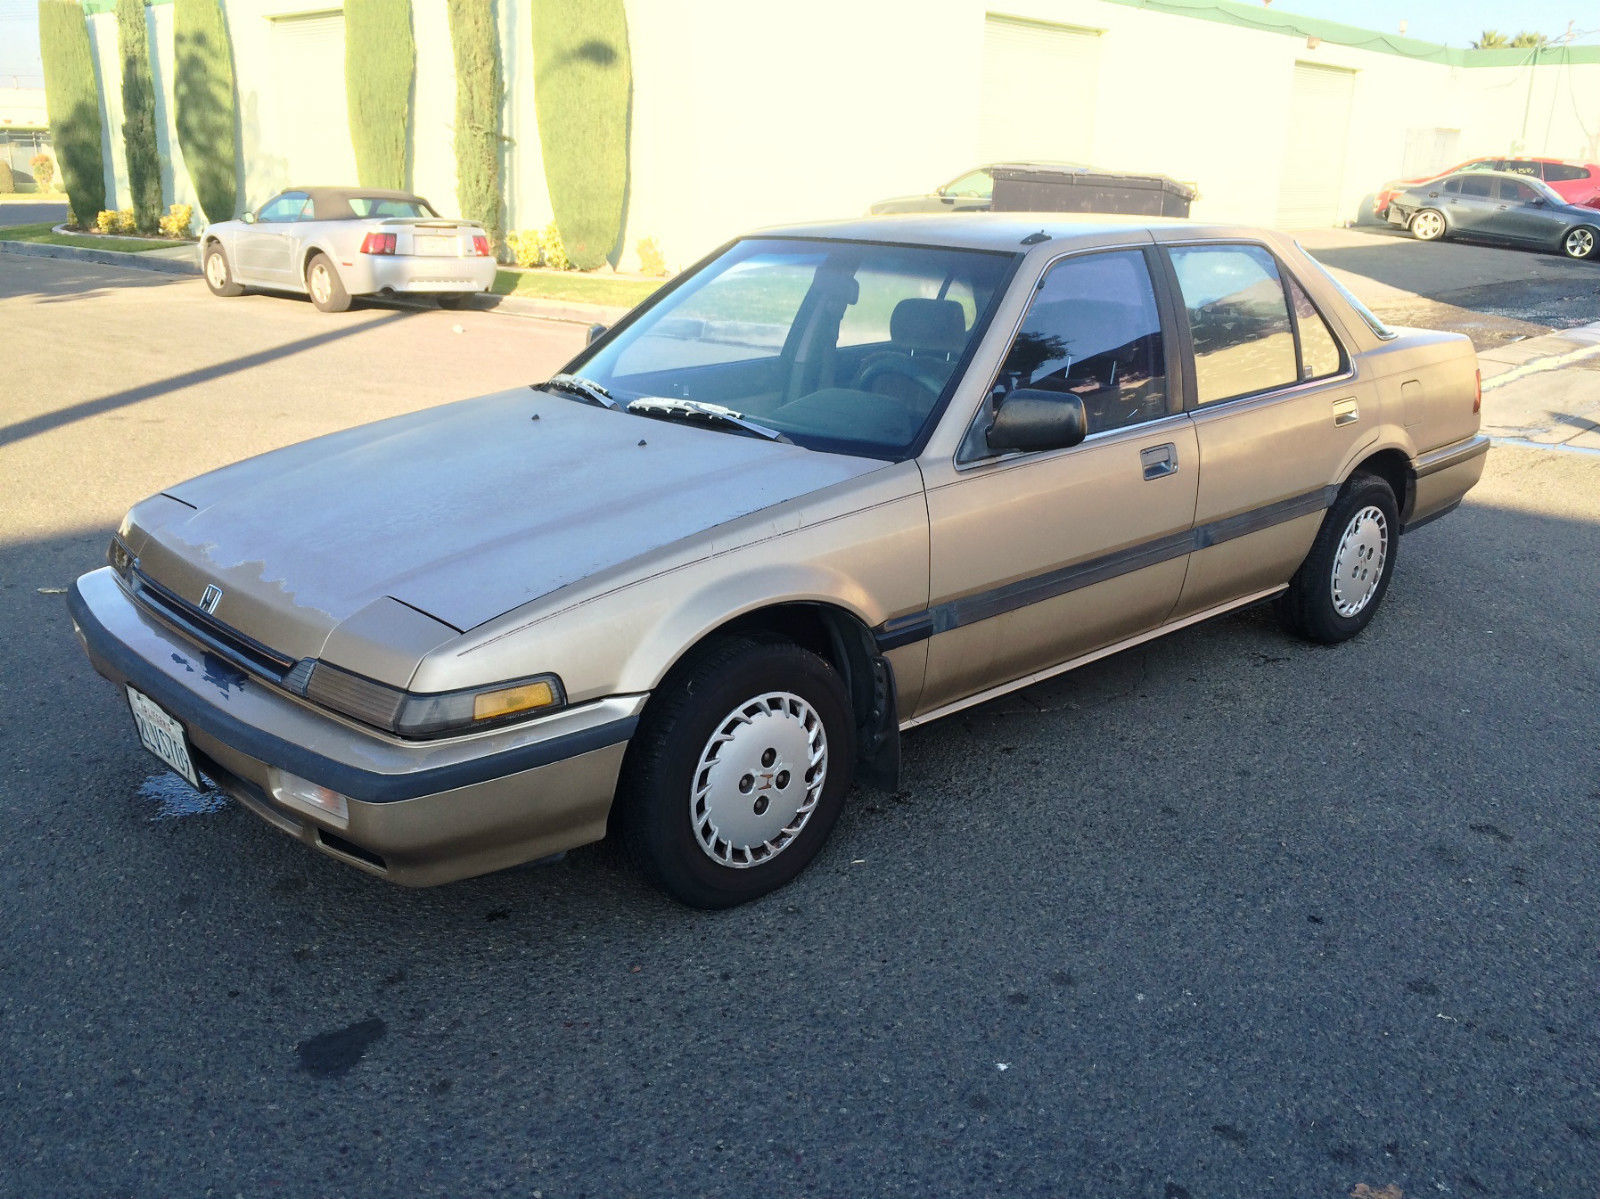 1989 honda accord lx 4 door fresh car donation classic honda accord 1989 for sale. Black Bedroom Furniture Sets. Home Design Ideas